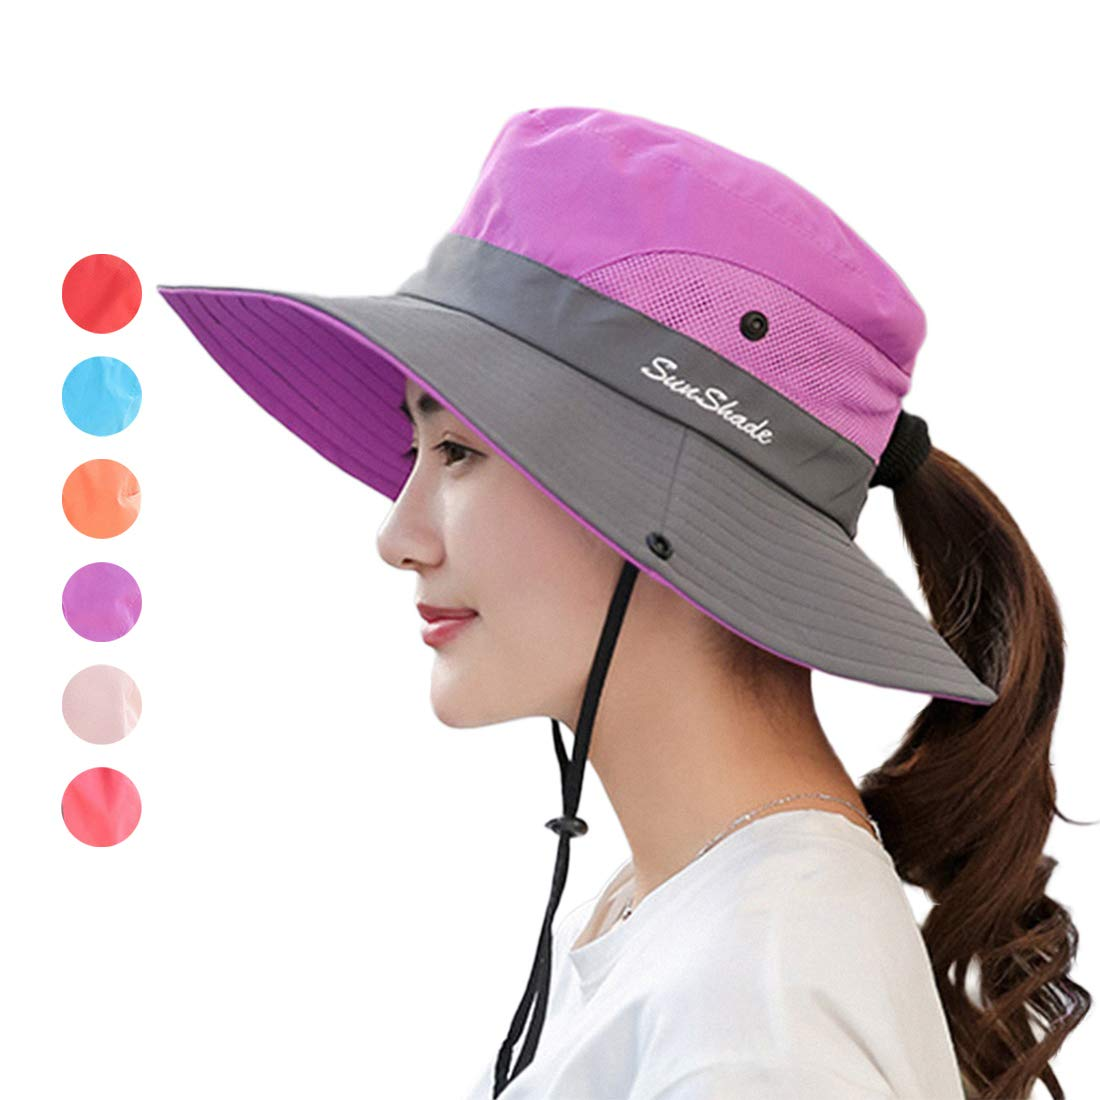 KXF Womens Outdoor Summer Sun Hat Wide Brim UV Protection Mesh Ponytail Fishing Hat Foldable Bucket Boonie Hat Safari with Adjustable Chin Strap